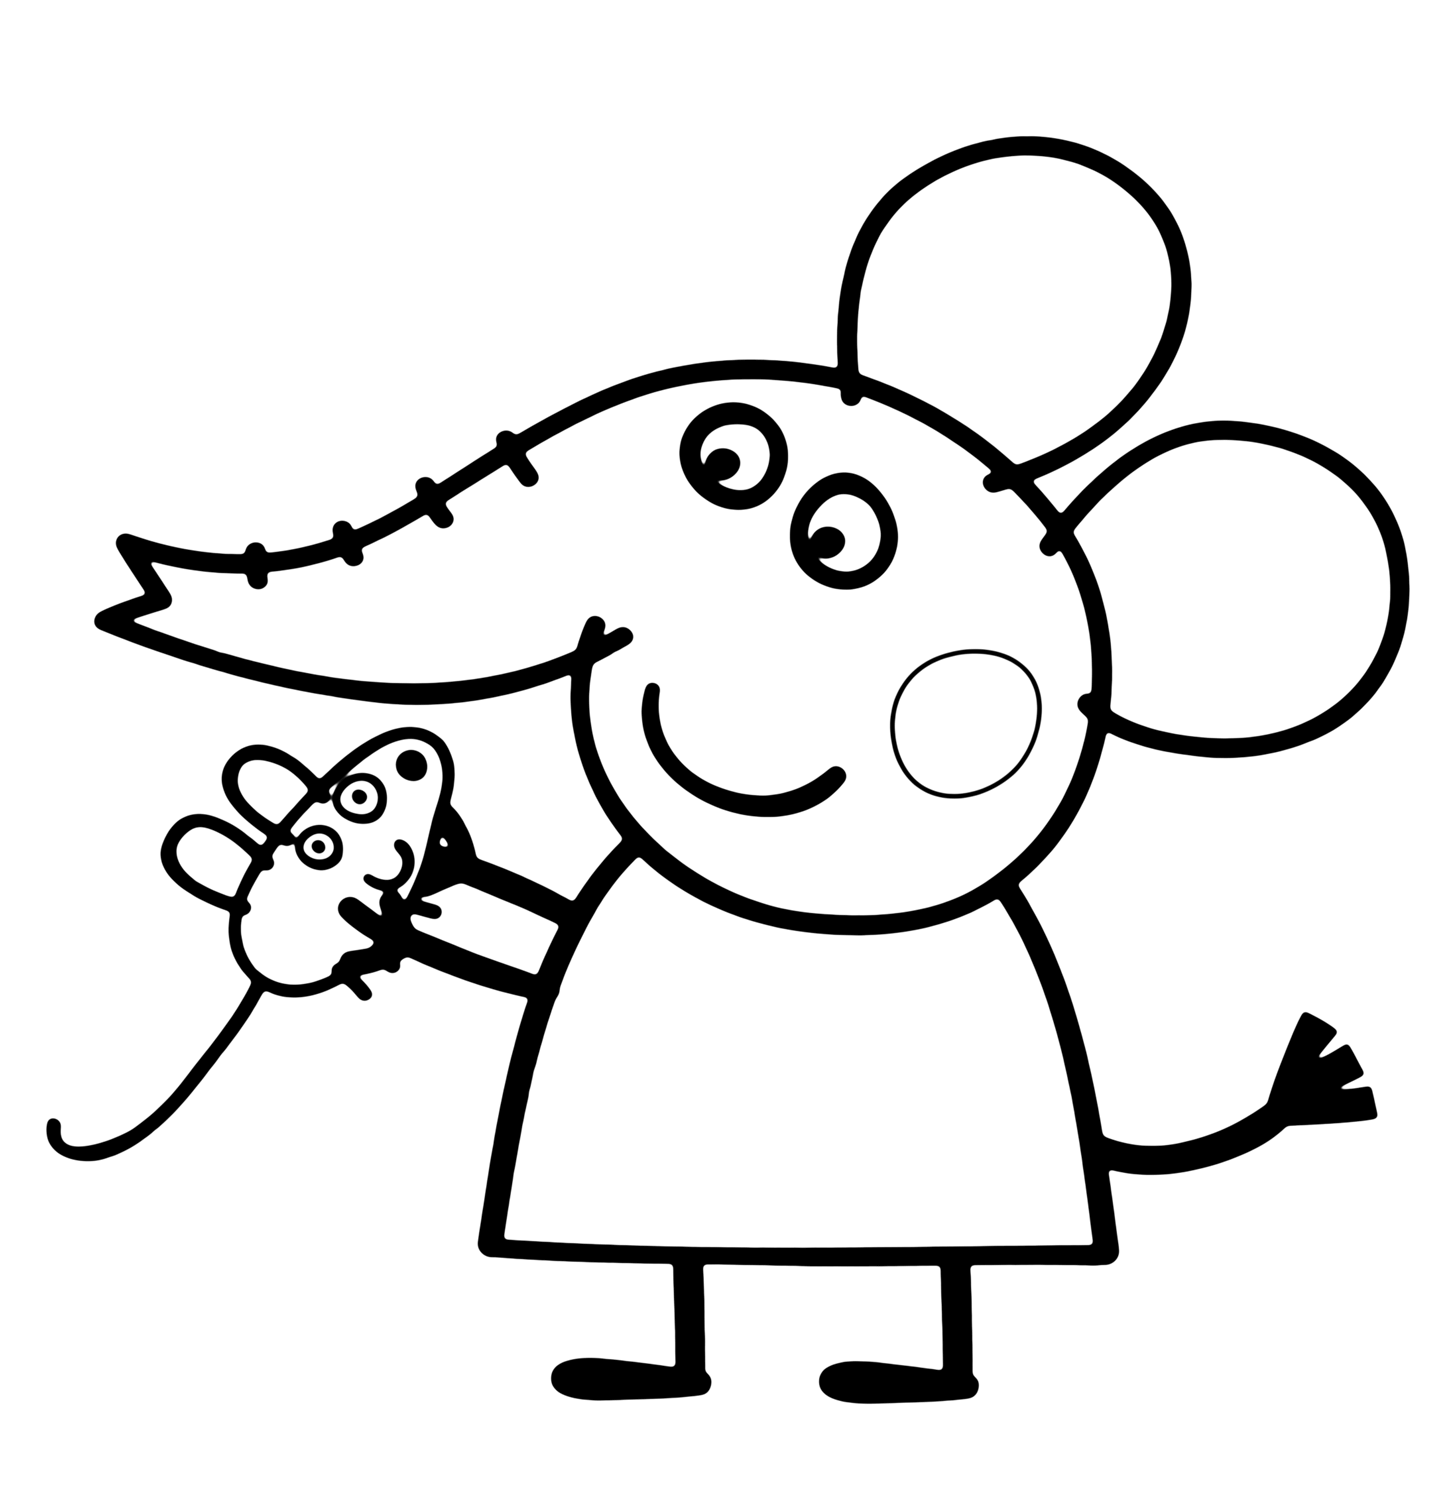 coloring pages peppa pig 30 printable peppa pig coloring pages you won39t find anywhere pig peppa pages coloring